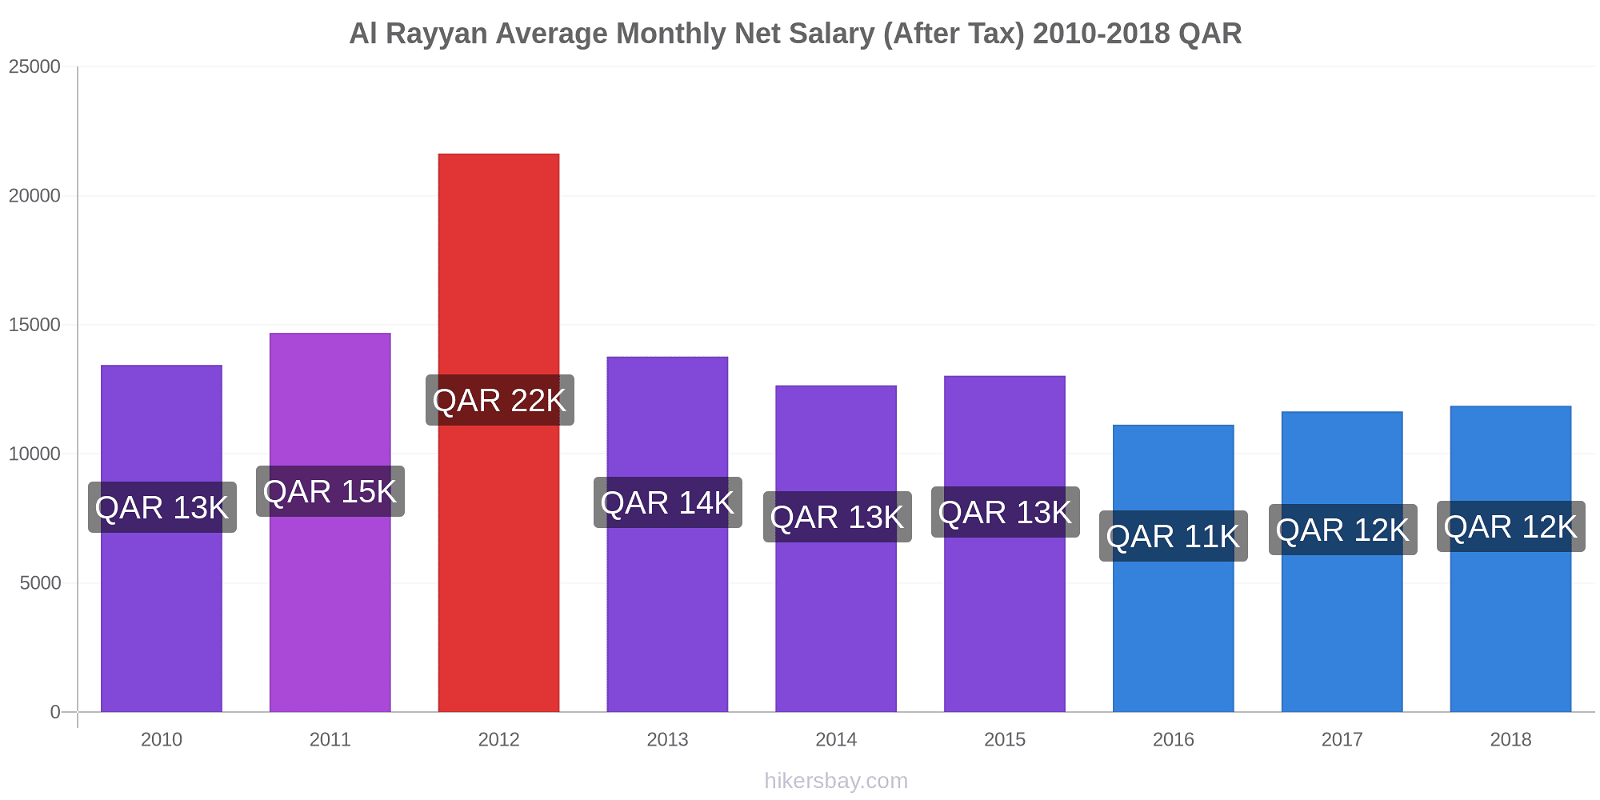 Al Rayyan price changes Average Monthly Net Salary (After Tax) hikersbay.com